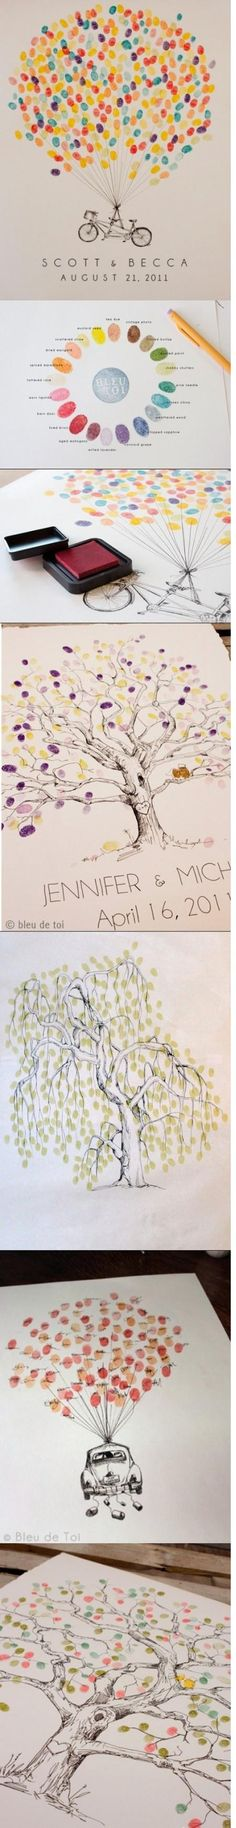 guest book idea. SO cute